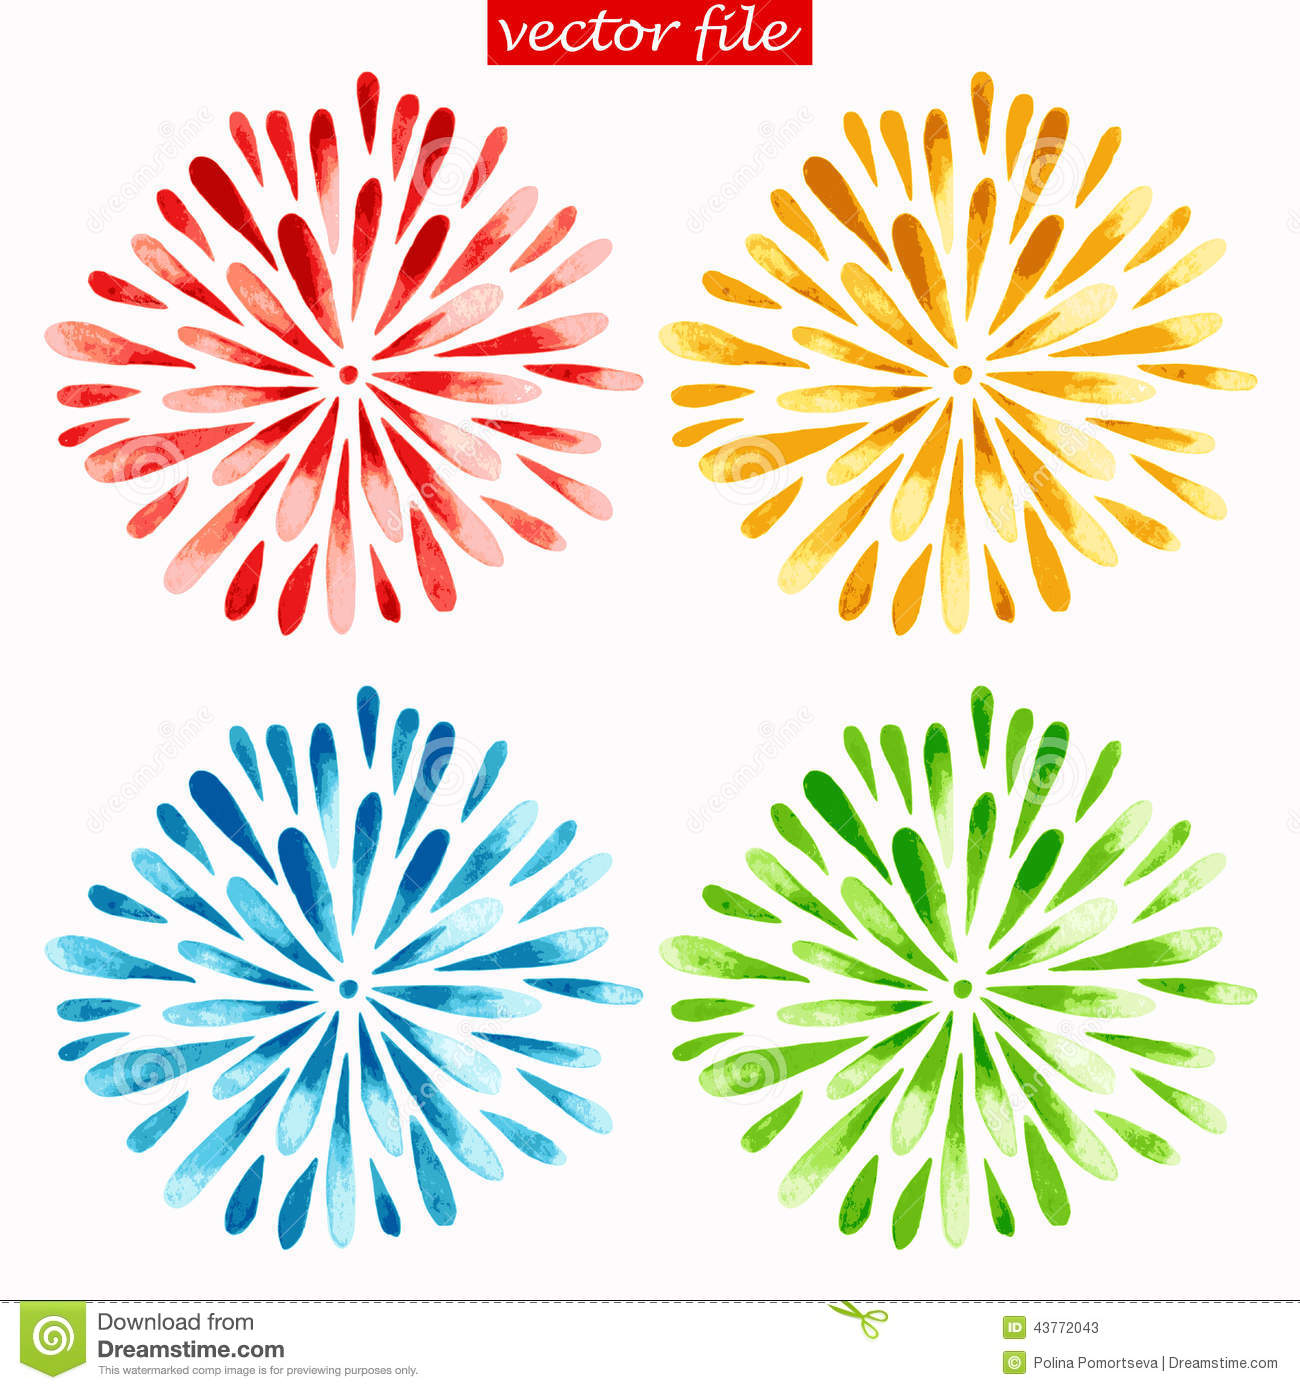 Colored Watercolor Sunburst Flowers Stock Vector - Image: 43772043